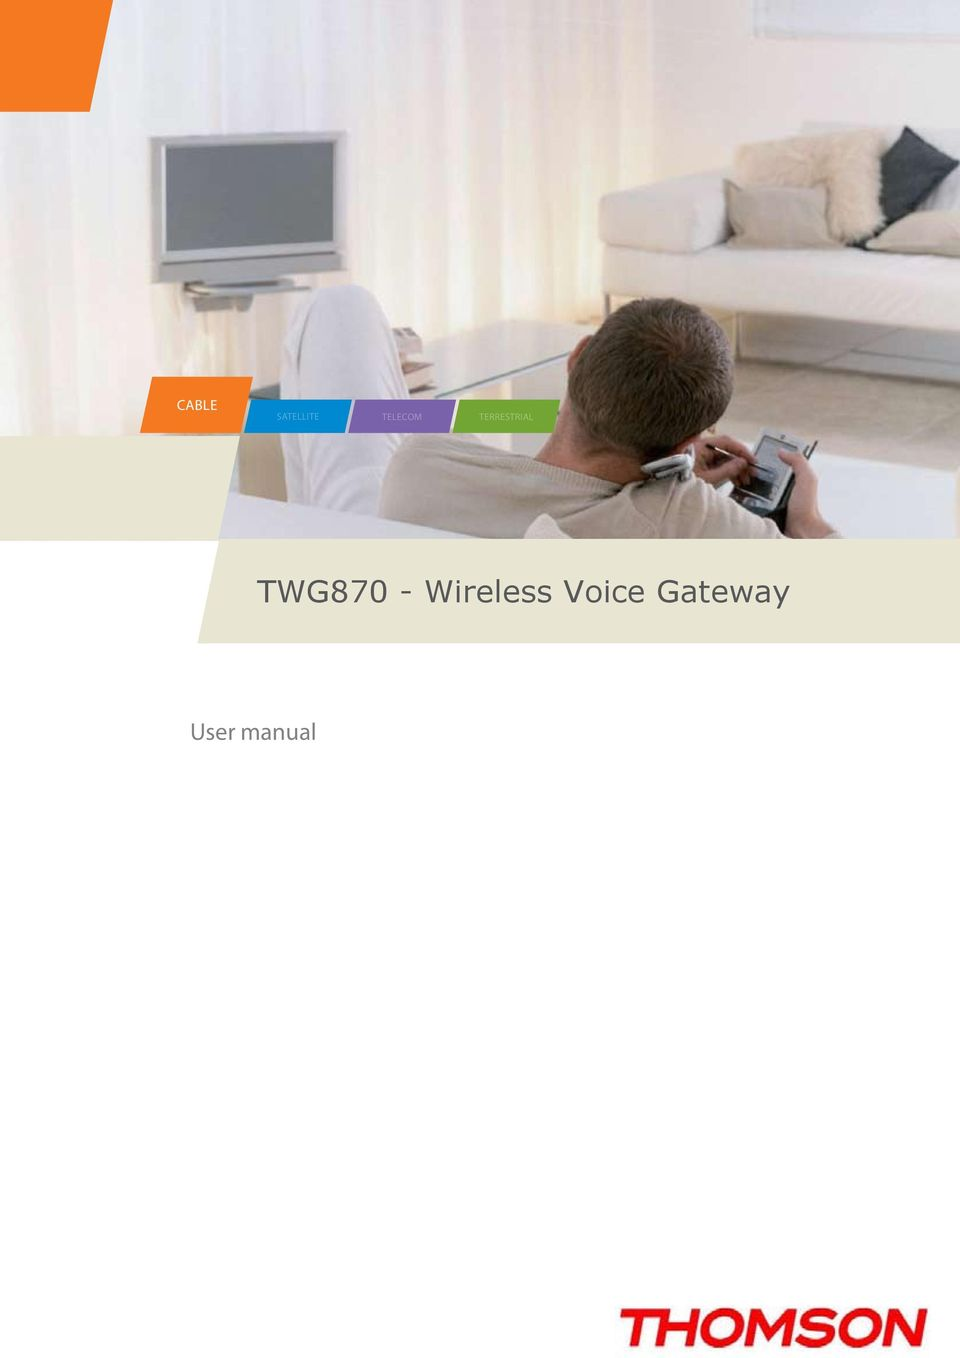 TWG870 - Wireless